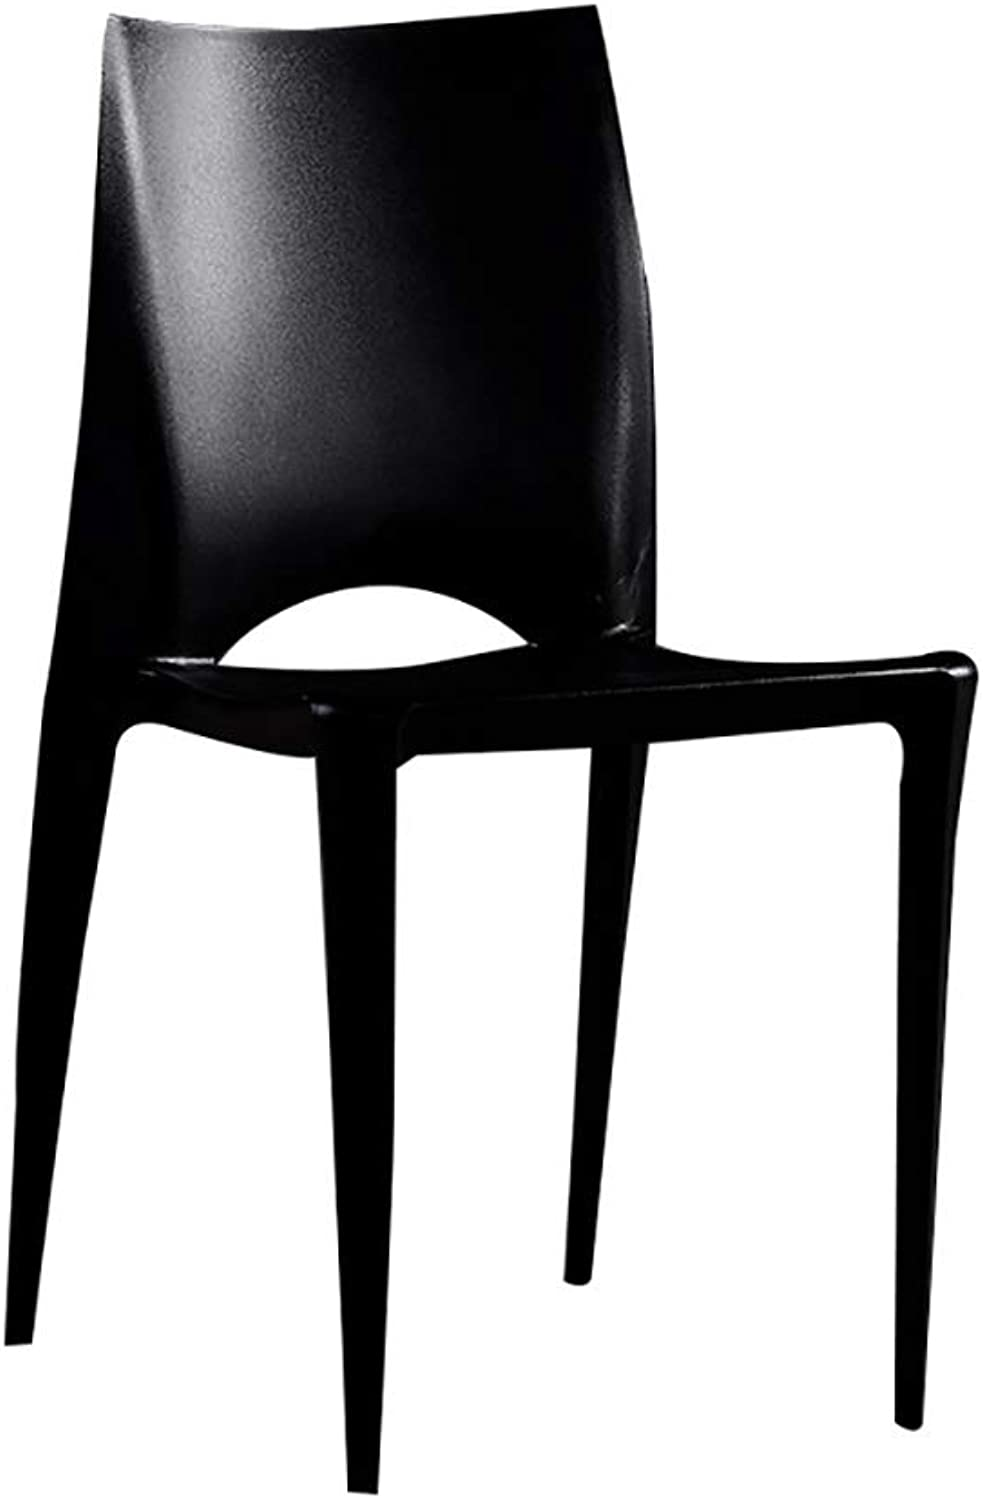 Dinette Modern Chair Simple Plastic Chair Office Padded Chair Home Chair Cafe Lounge Chair (color   Black)